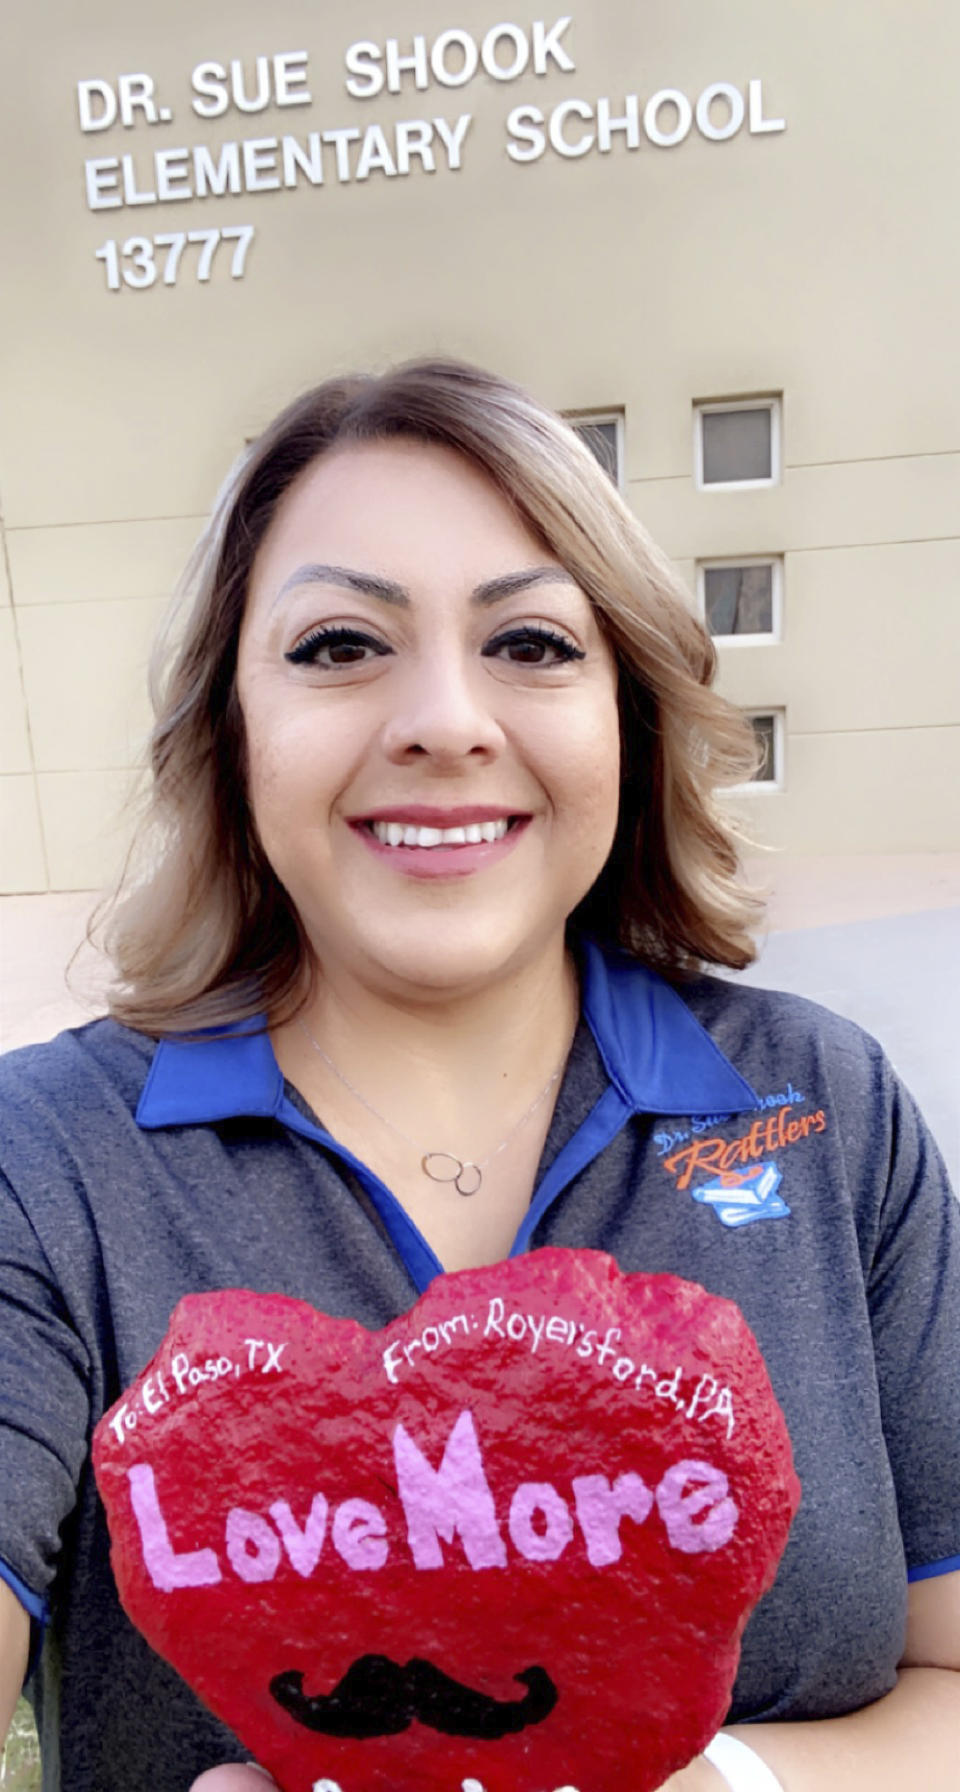 """In this Aug. 2, 2021, photo provided by Monica Aguilera, Aguilera takes a selfie with a heart-shaped """"kindness rock"""" memorializing Texas teacher Zelene Blancas, who died of COVID-19 in December 2020, outside of Dr. Sue A. Shook Elementary School in El Paso, Texas. (Monica Aguilera via AP)"""